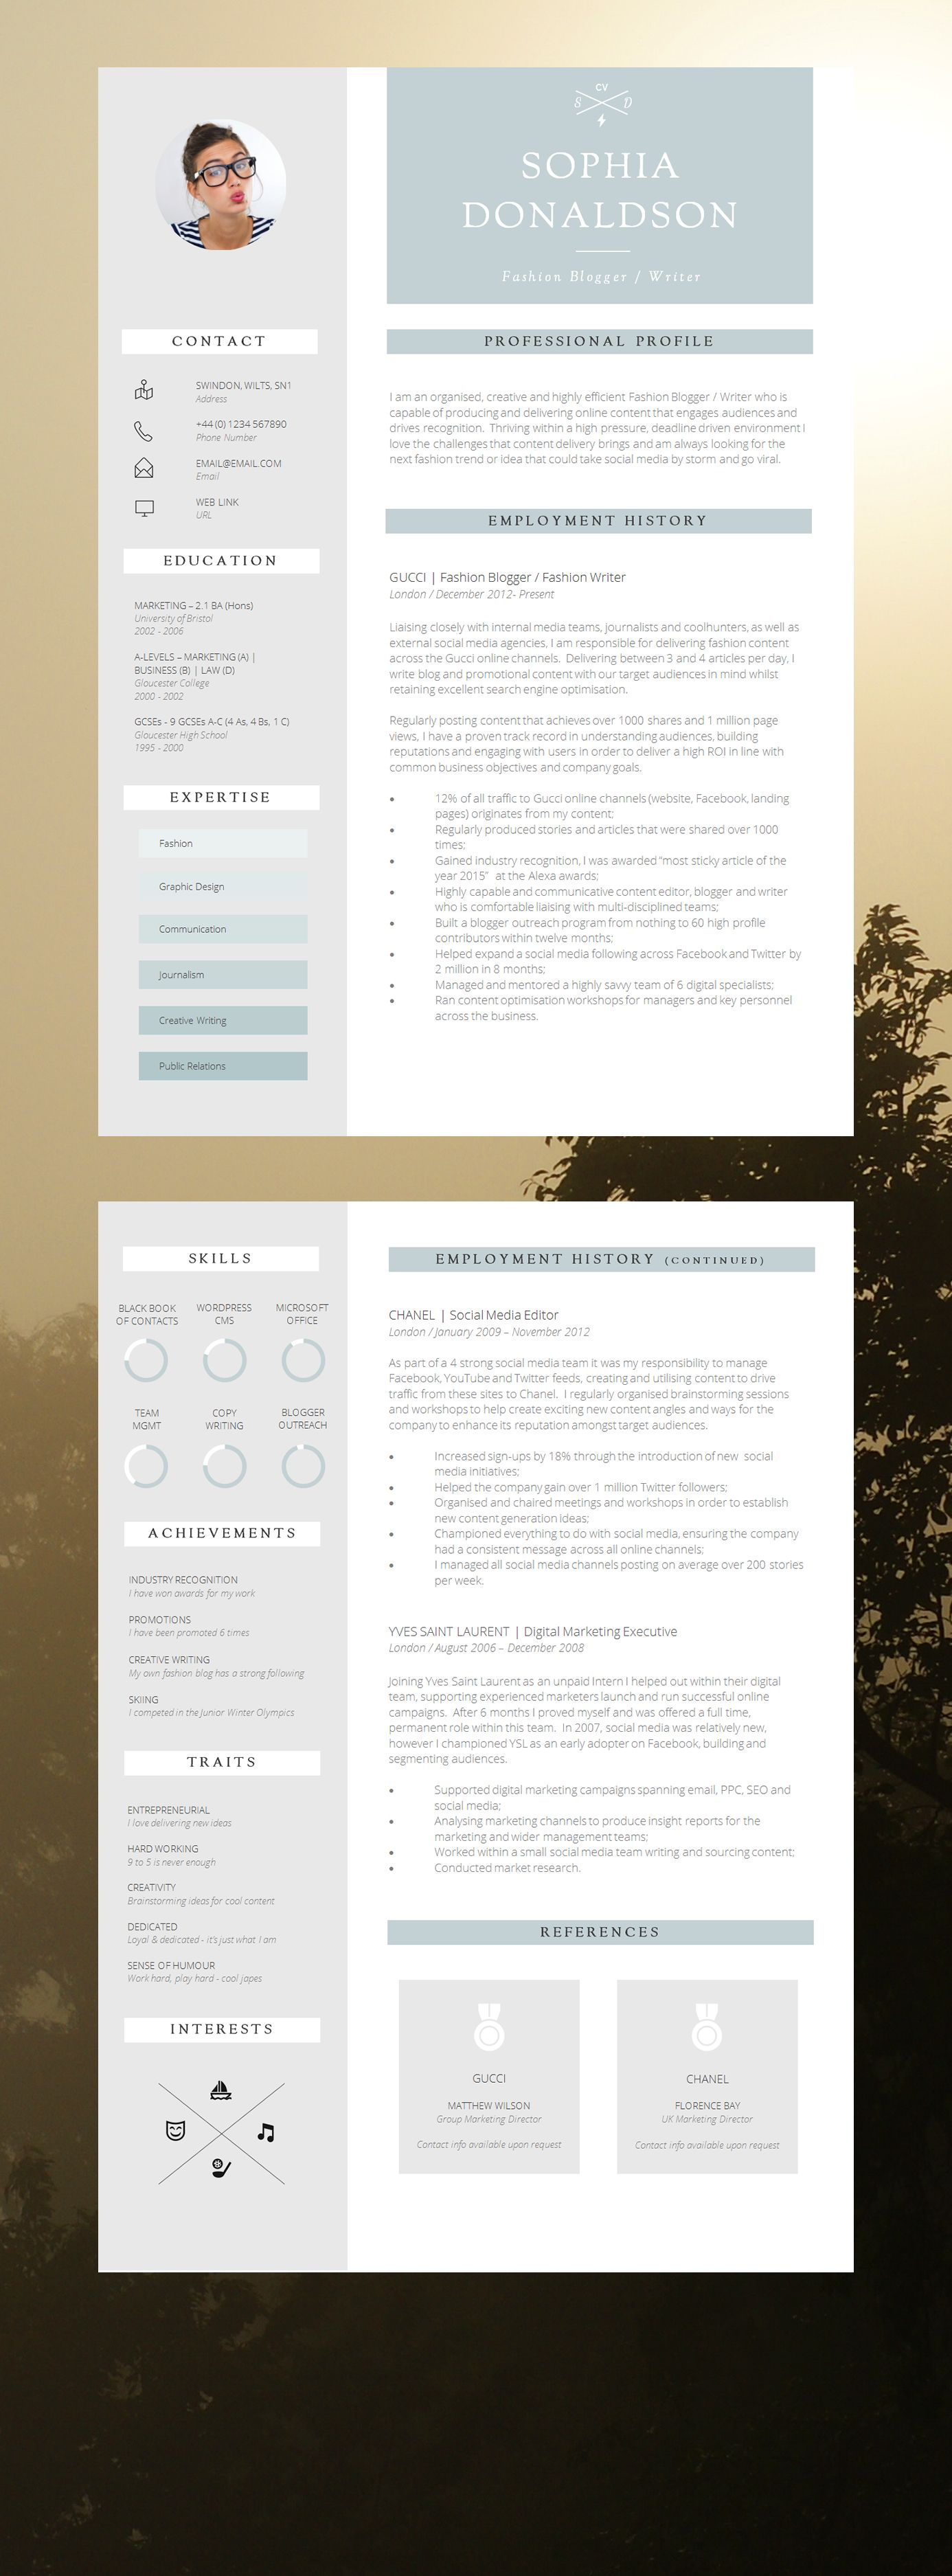 resume template 3 page cv template misc header cv template modern cv design don t underestimate the power of a professional